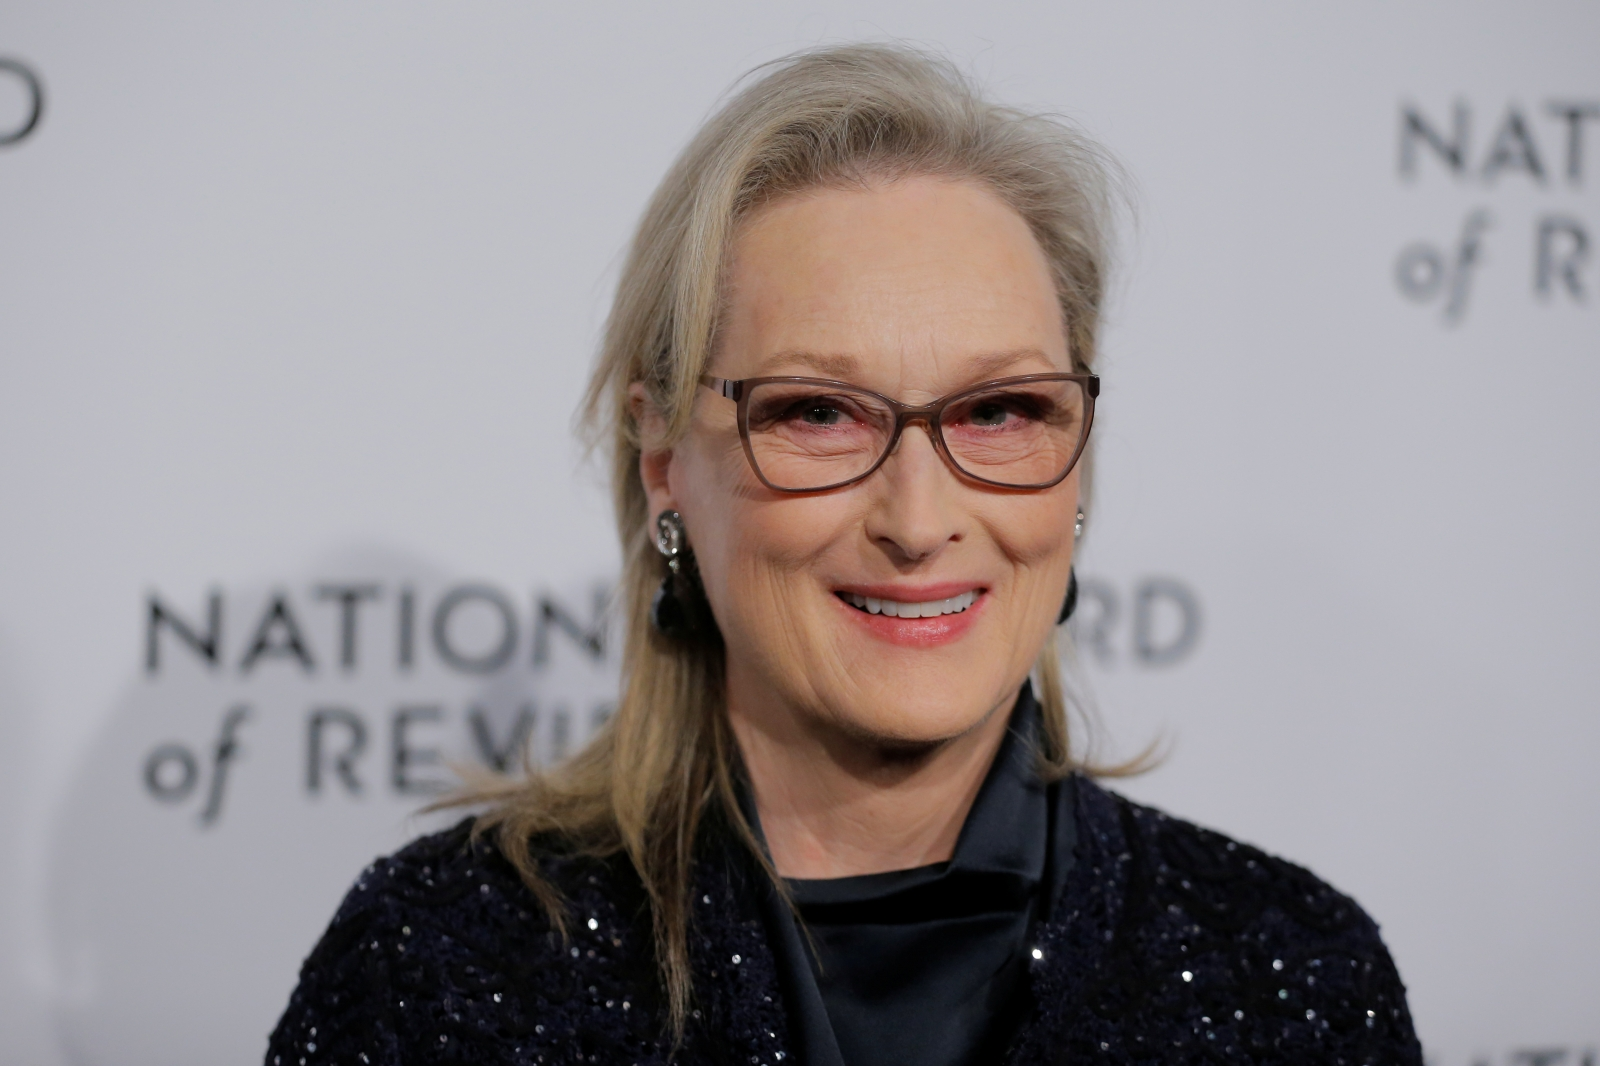 Meryl Streep on Possible Oprah 2020 Run: 'She's More Than Qualified'